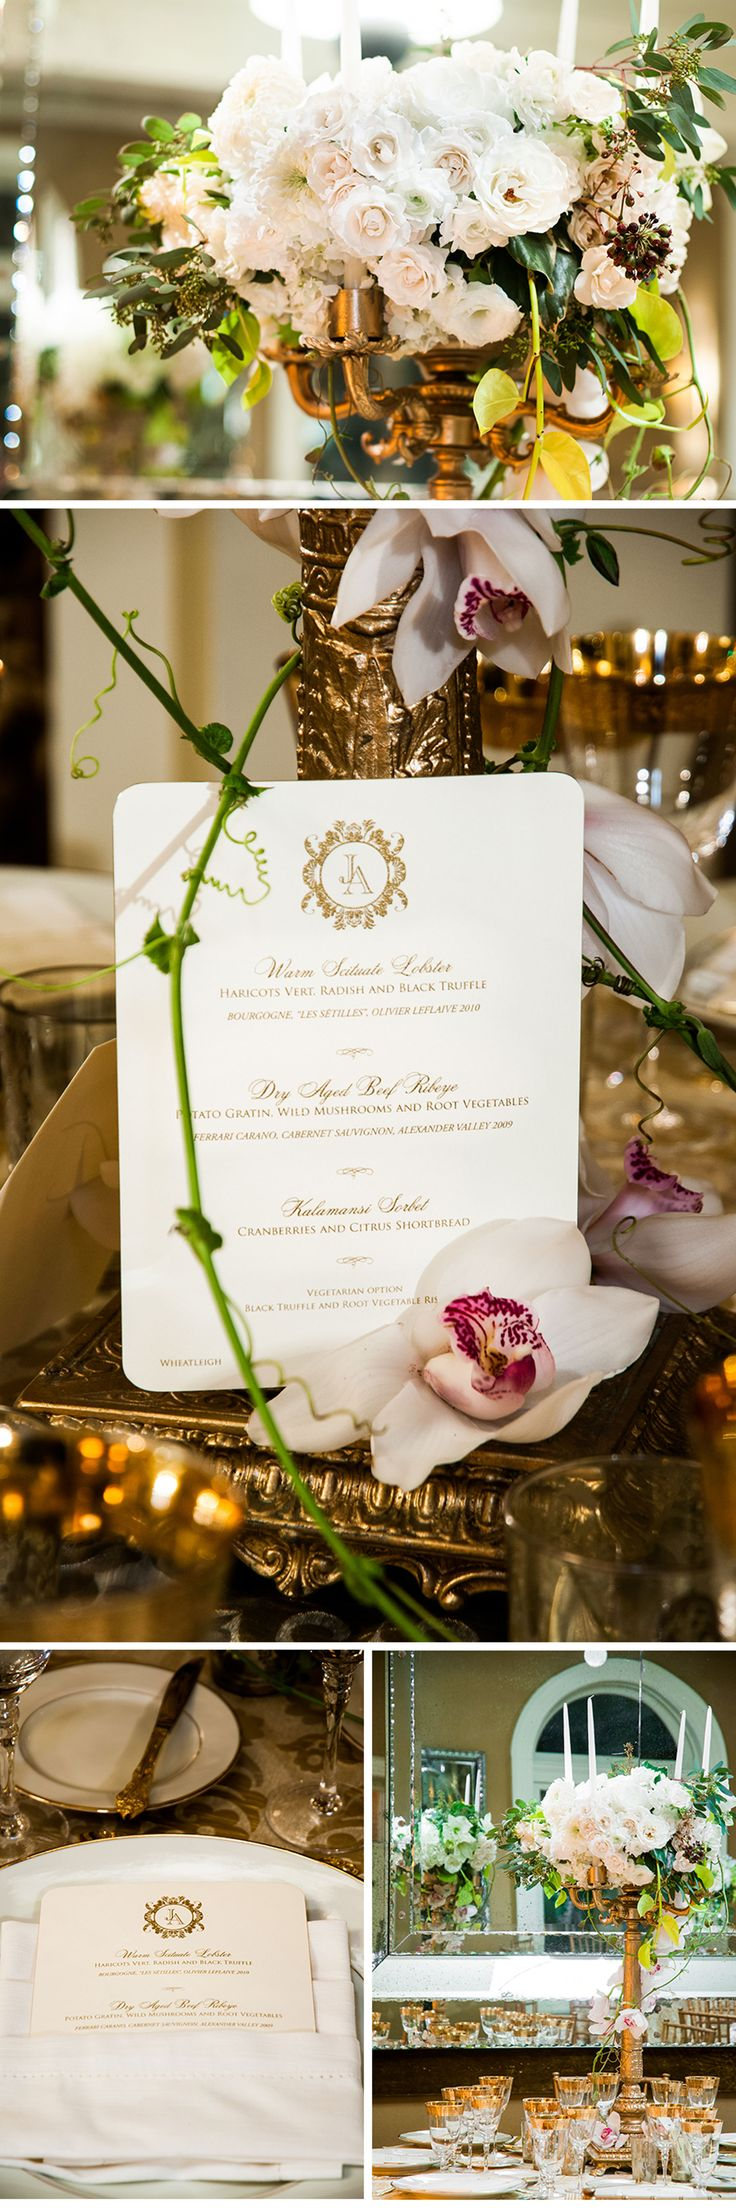 Luxurious Winter Wedding - Be inspired by Jillian and Alfred's luxurious winter wedding in the Berkshires - wedding, wheatleigh, ...